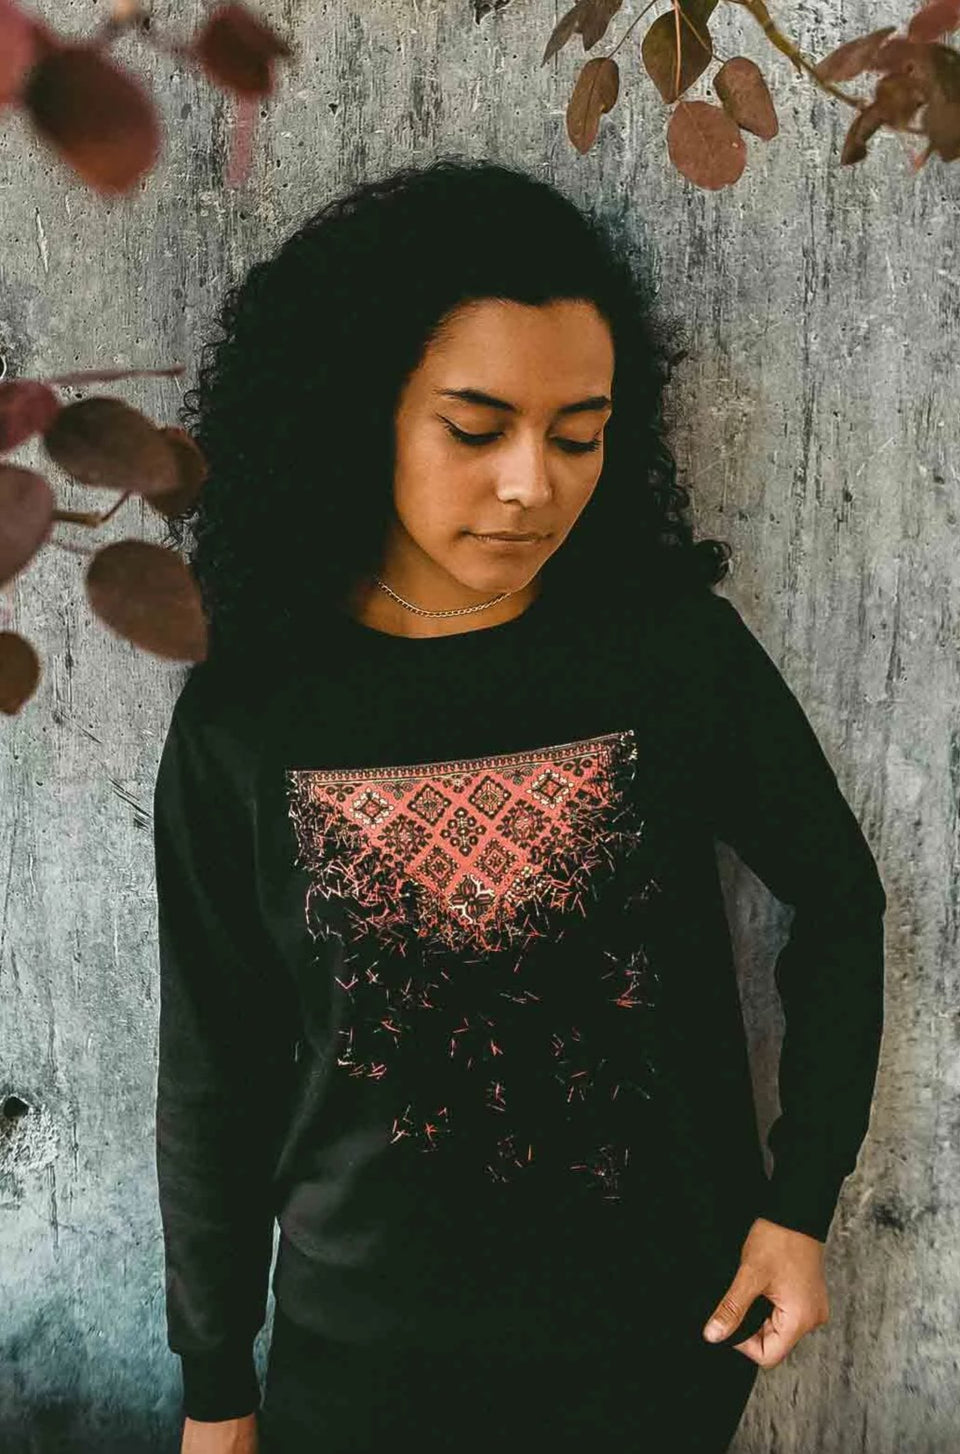 Atash (Fire) Unisex Sweatshirt